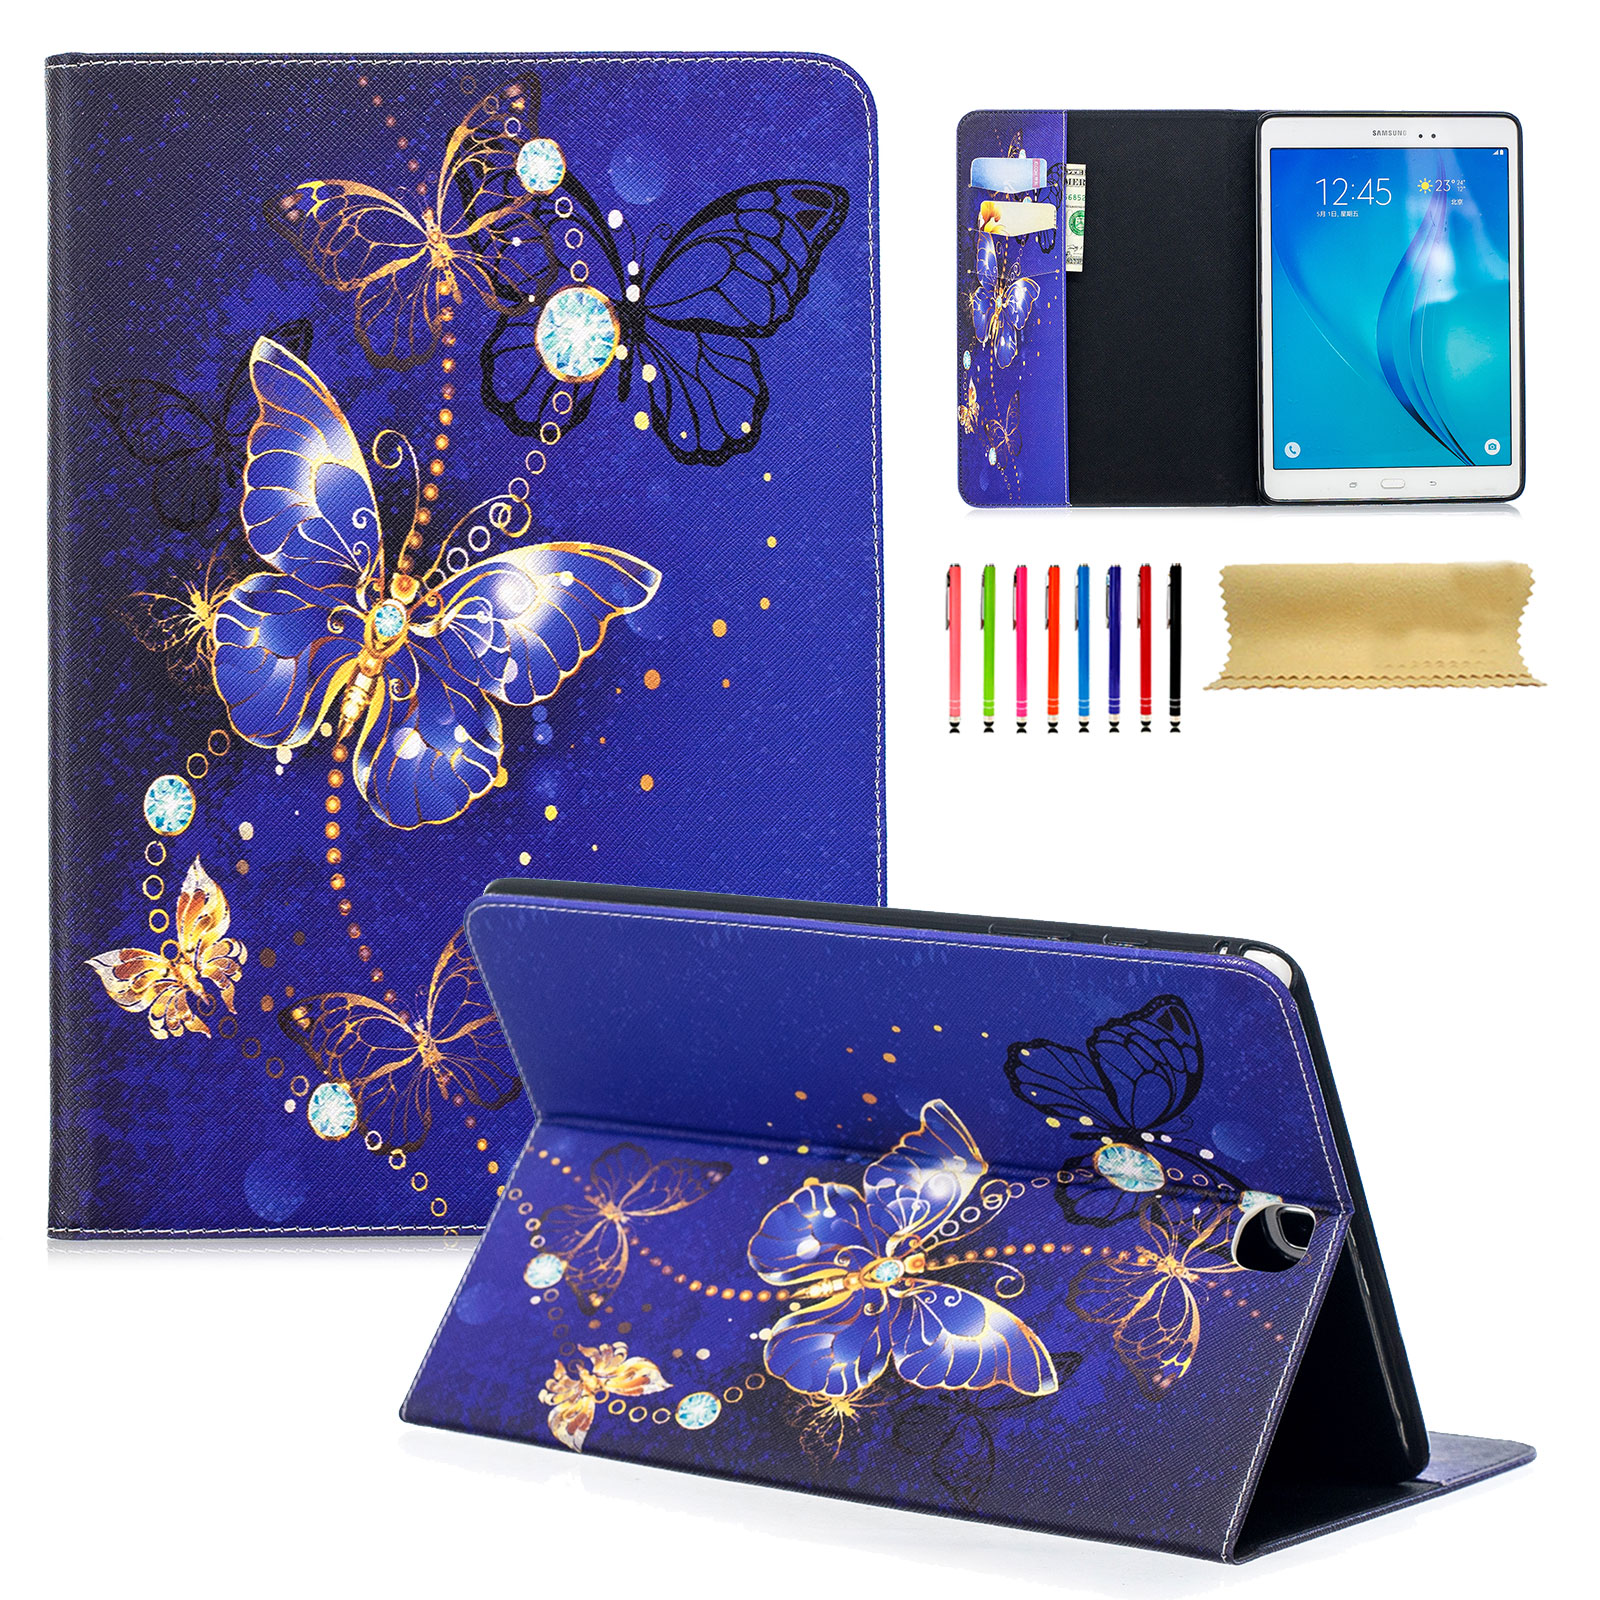 Galaxy Tab A 9.7 Case, Galaxy Tab A 9.7 with S Pen Case, Goodest Slim-Fit Smart Folio Stand Case Cover with Card Cash Slots for Samsung Galaxy Tab A 9.7 Inch SM-P550 SM-T550 Tablet, Blue Butterfly